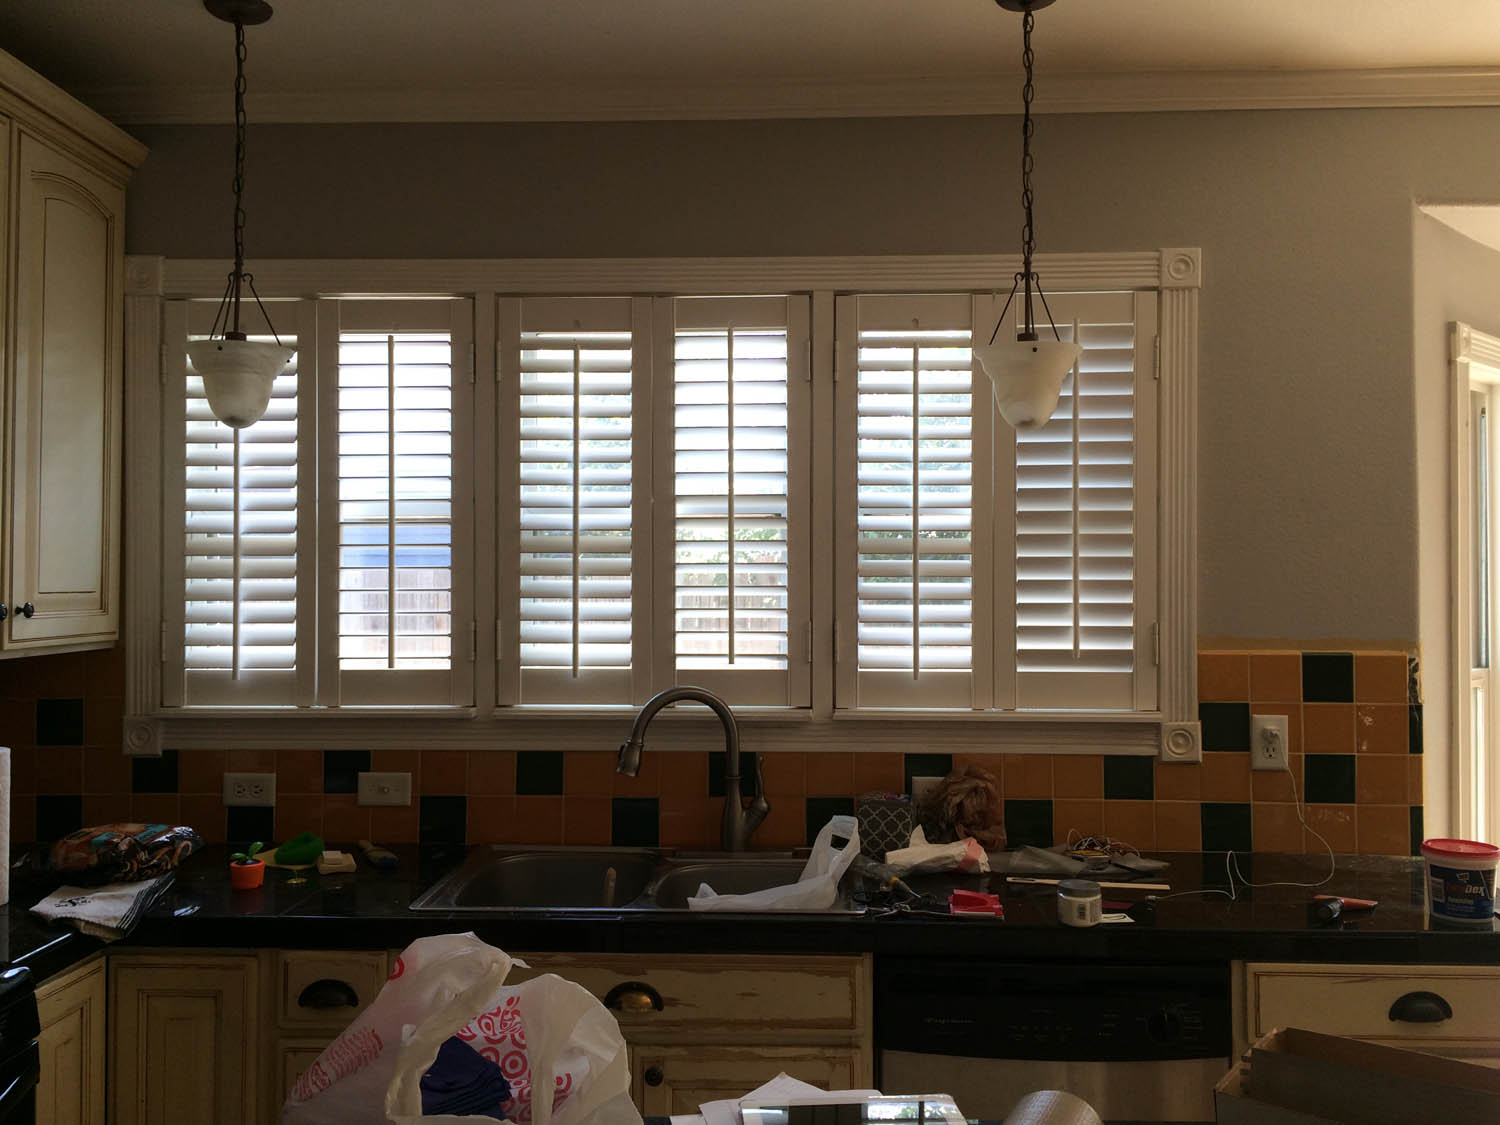 Remodeled kitchen at Curtice Cottage—sink view with old lights and backsplash.